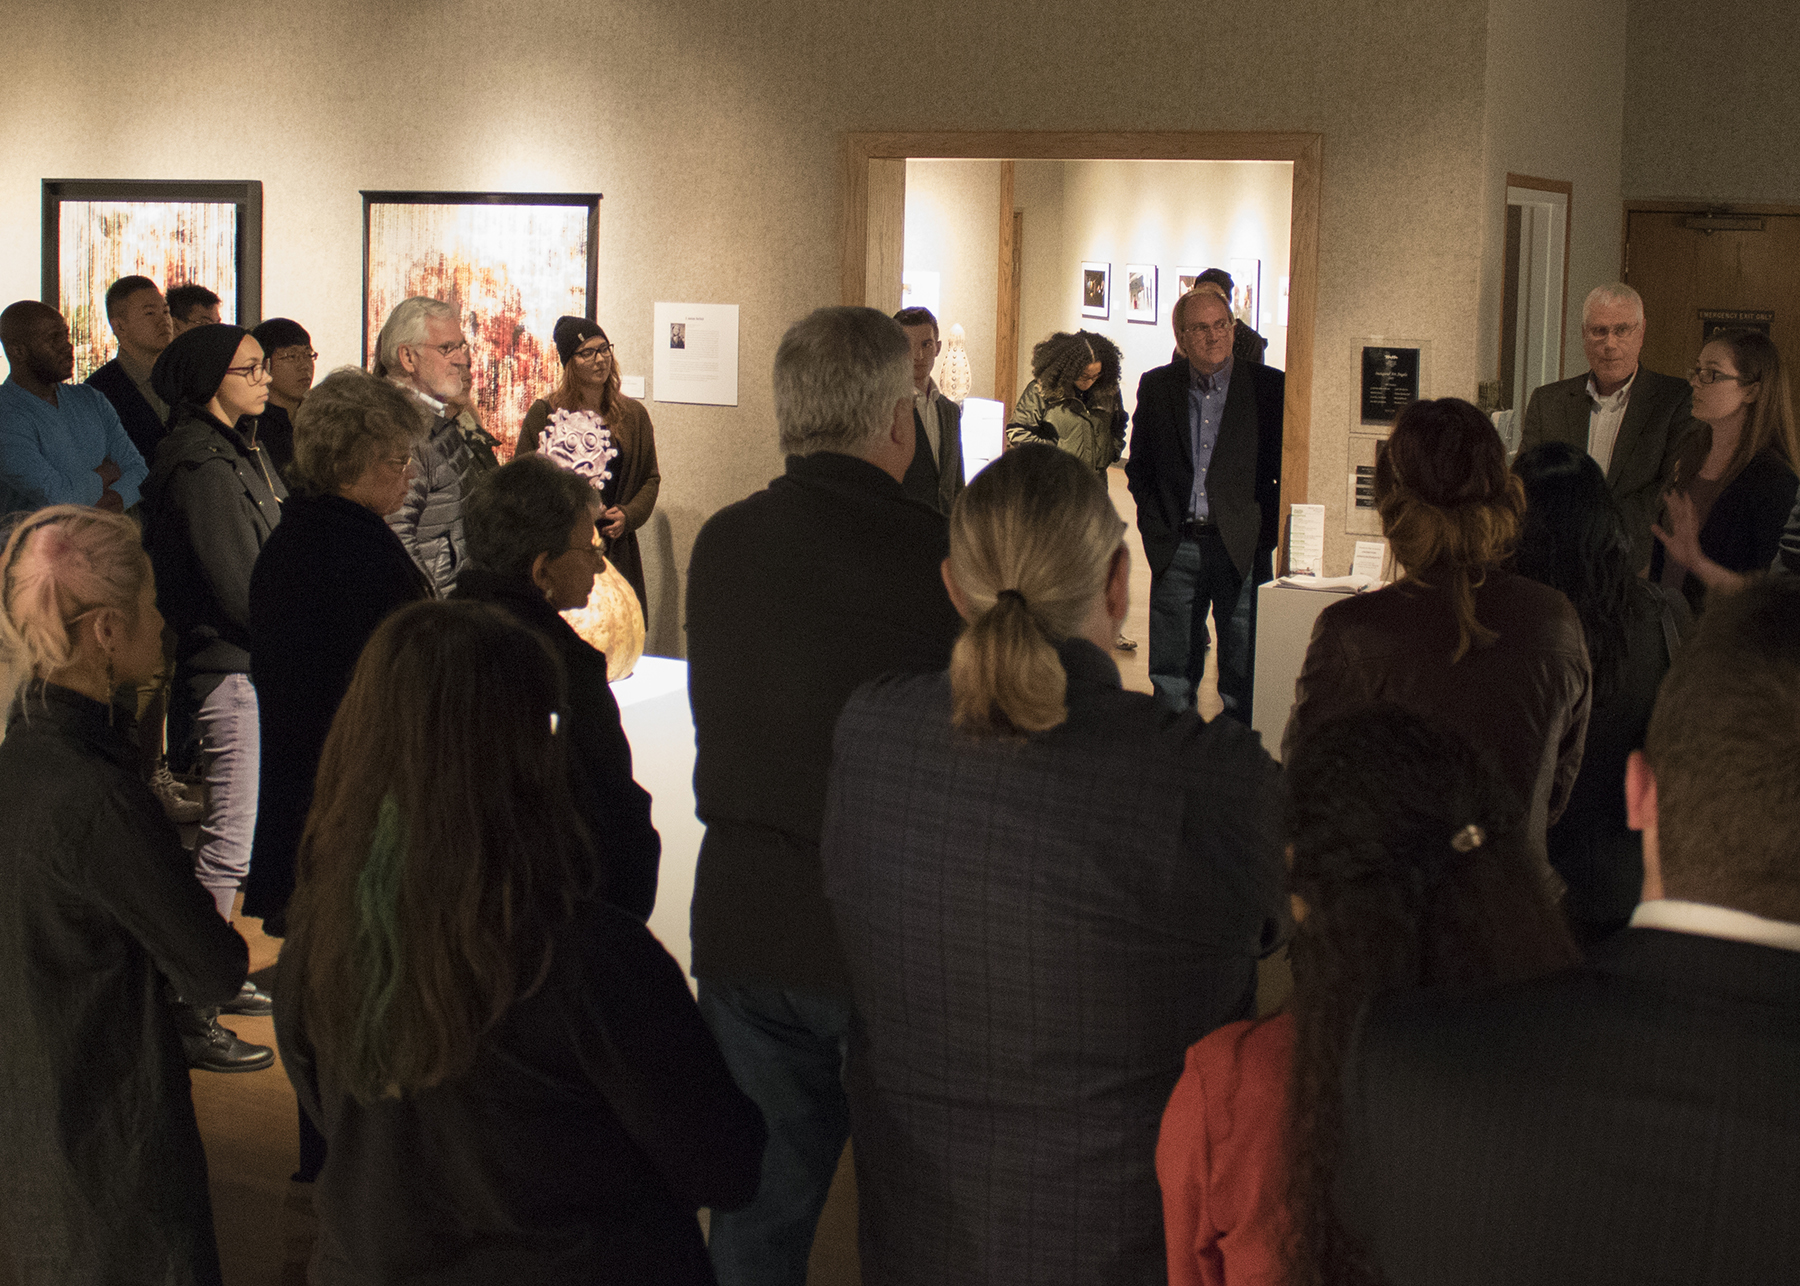 Jan. 21, 2016 - Guests addressed by Art Department Chairman, Professor Mark Anderson, and Martin Museum of Art Director, Allison Chew Syltie.